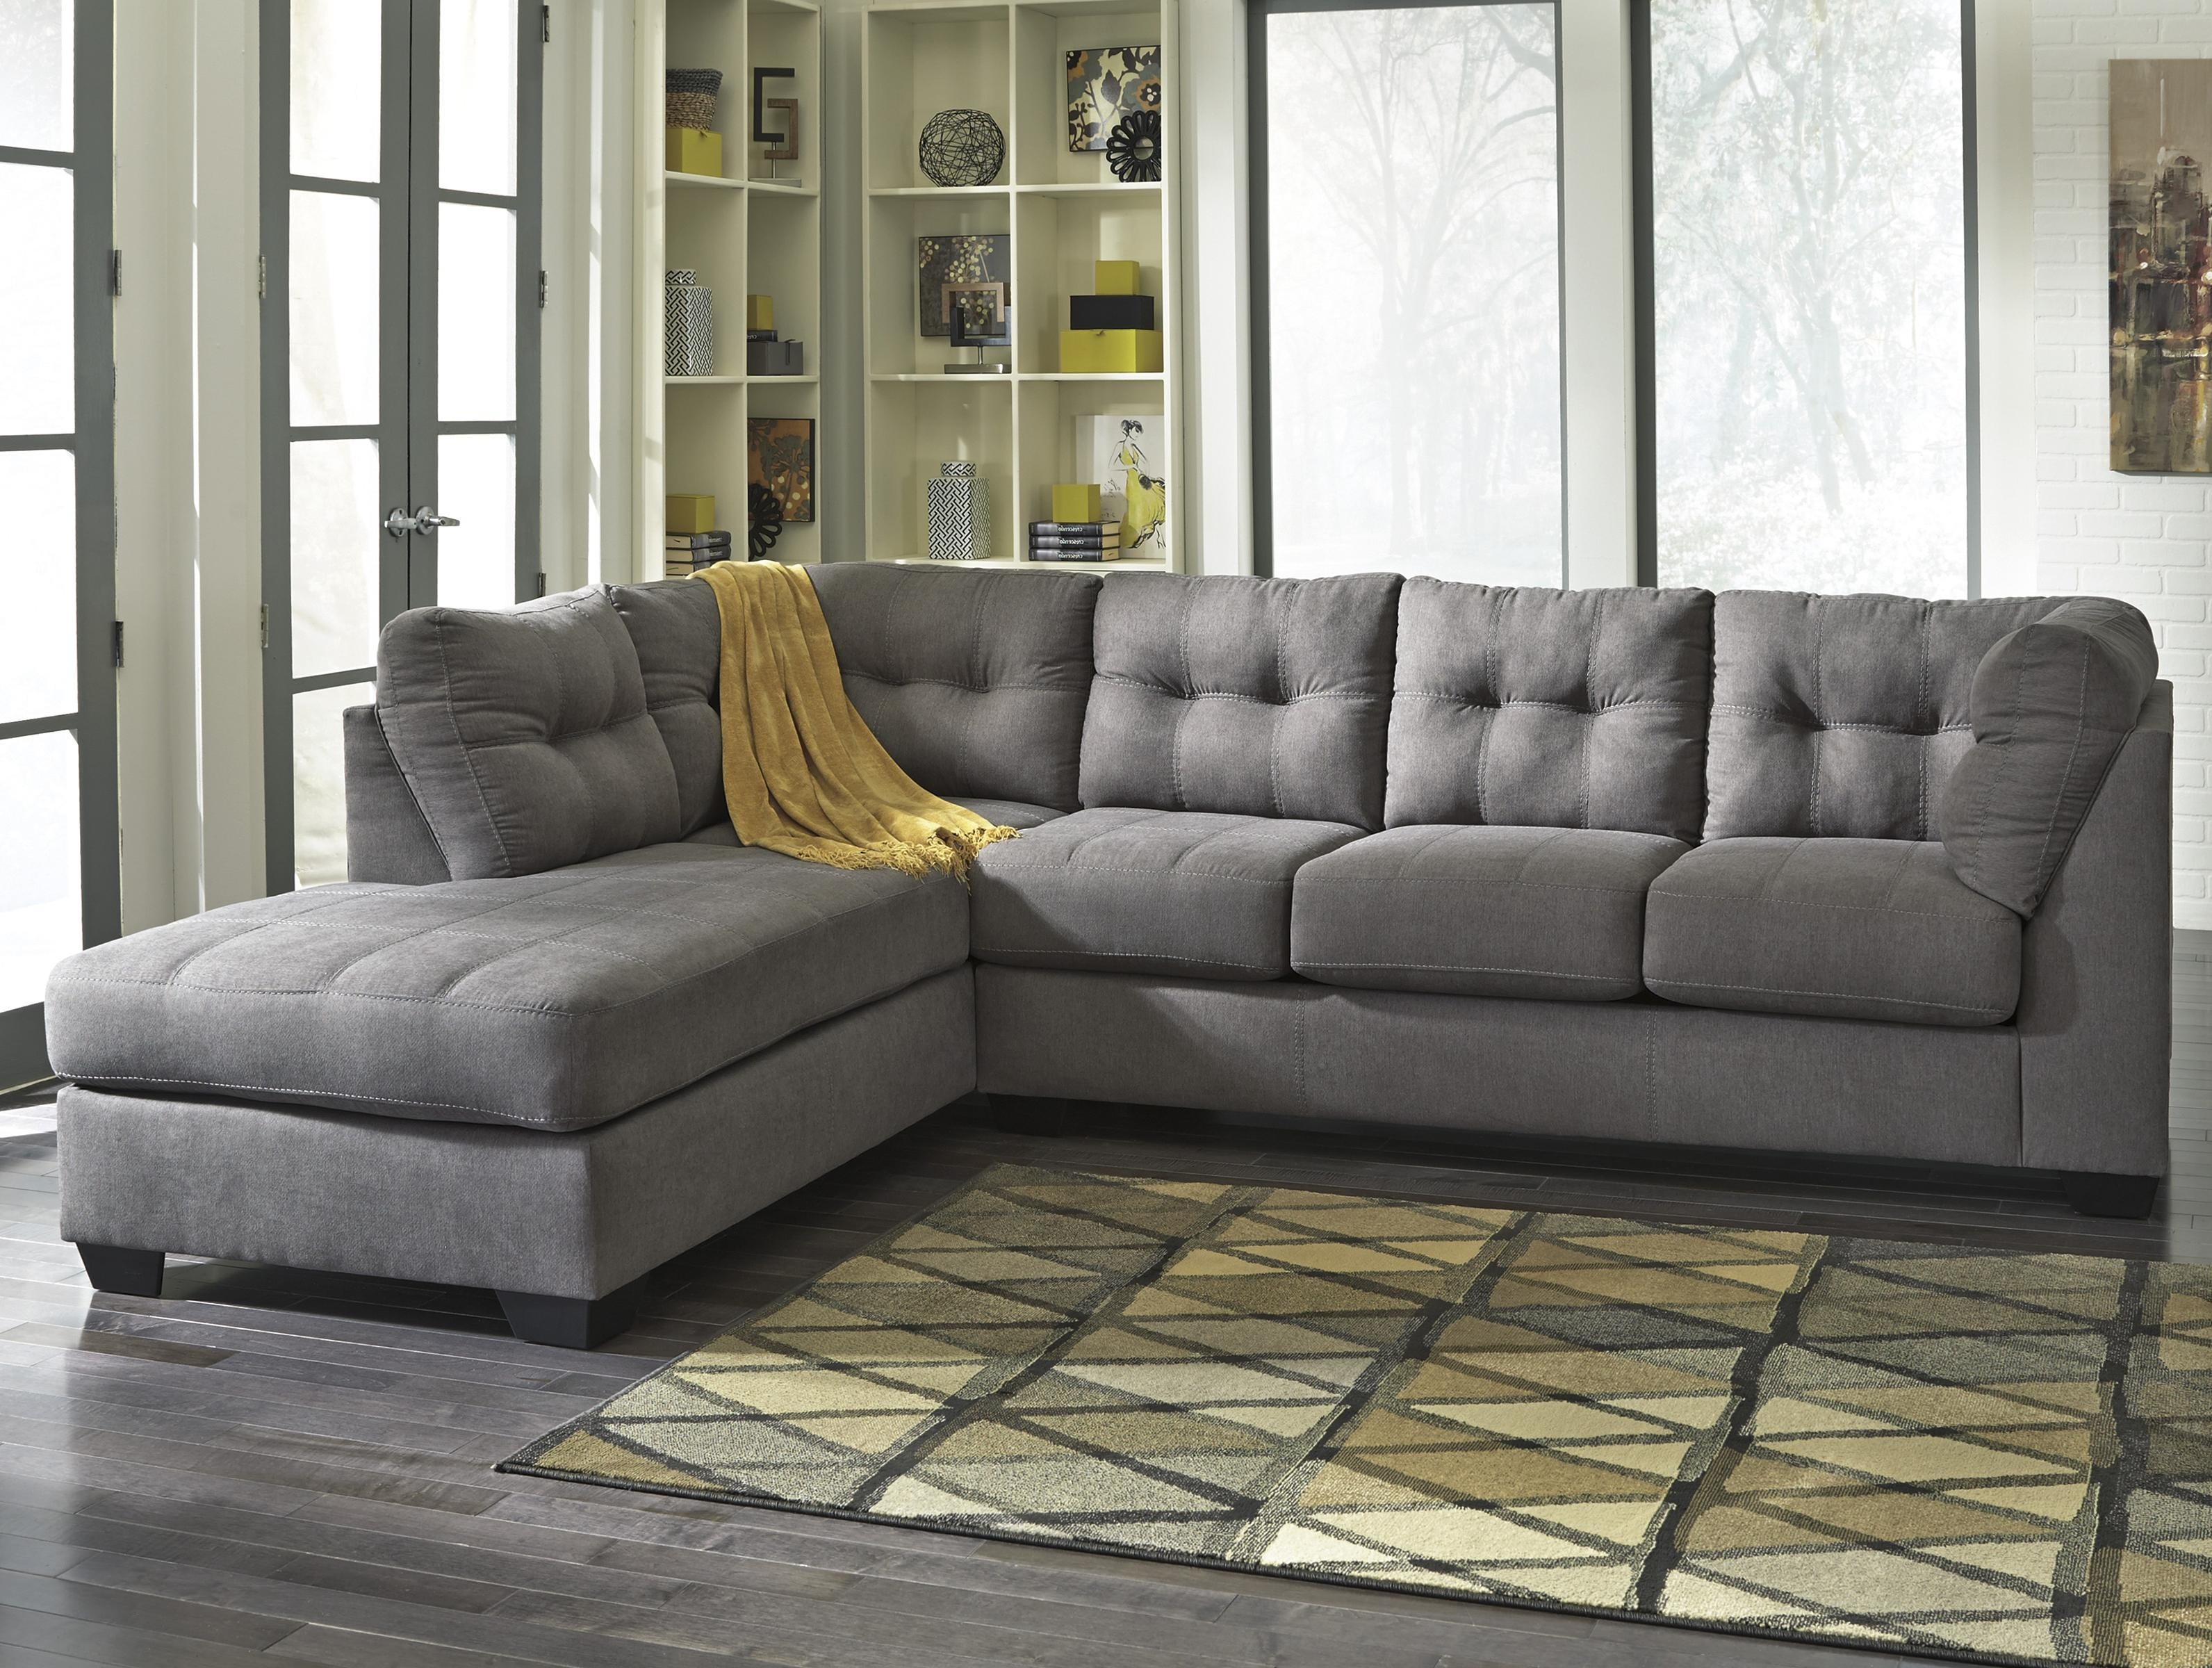 Benchcraftashley Maier – Charcoal 2 Piece Sectional With Left Regarding Jackson Tn Sectional Sofas (Image 4 of 10)